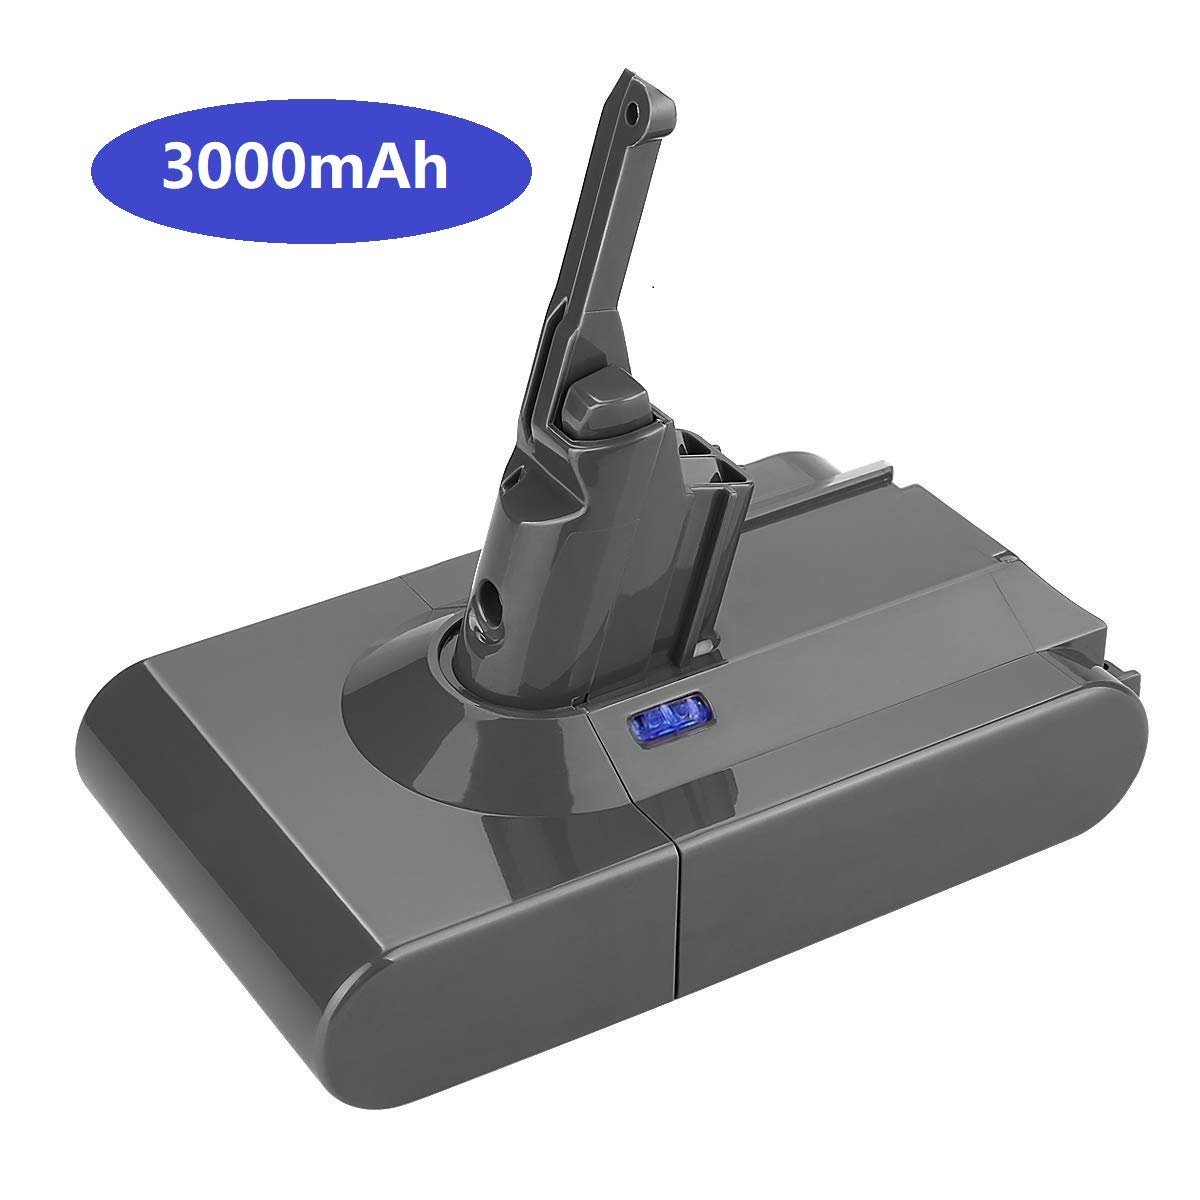 3000mAh for Dyson V8 Replacement Battery Absolute Animal Fluffy CordFree Handheld Stick Cordless Vacuum Cleaner Li-ion Sony Cell 21.6v Batteries